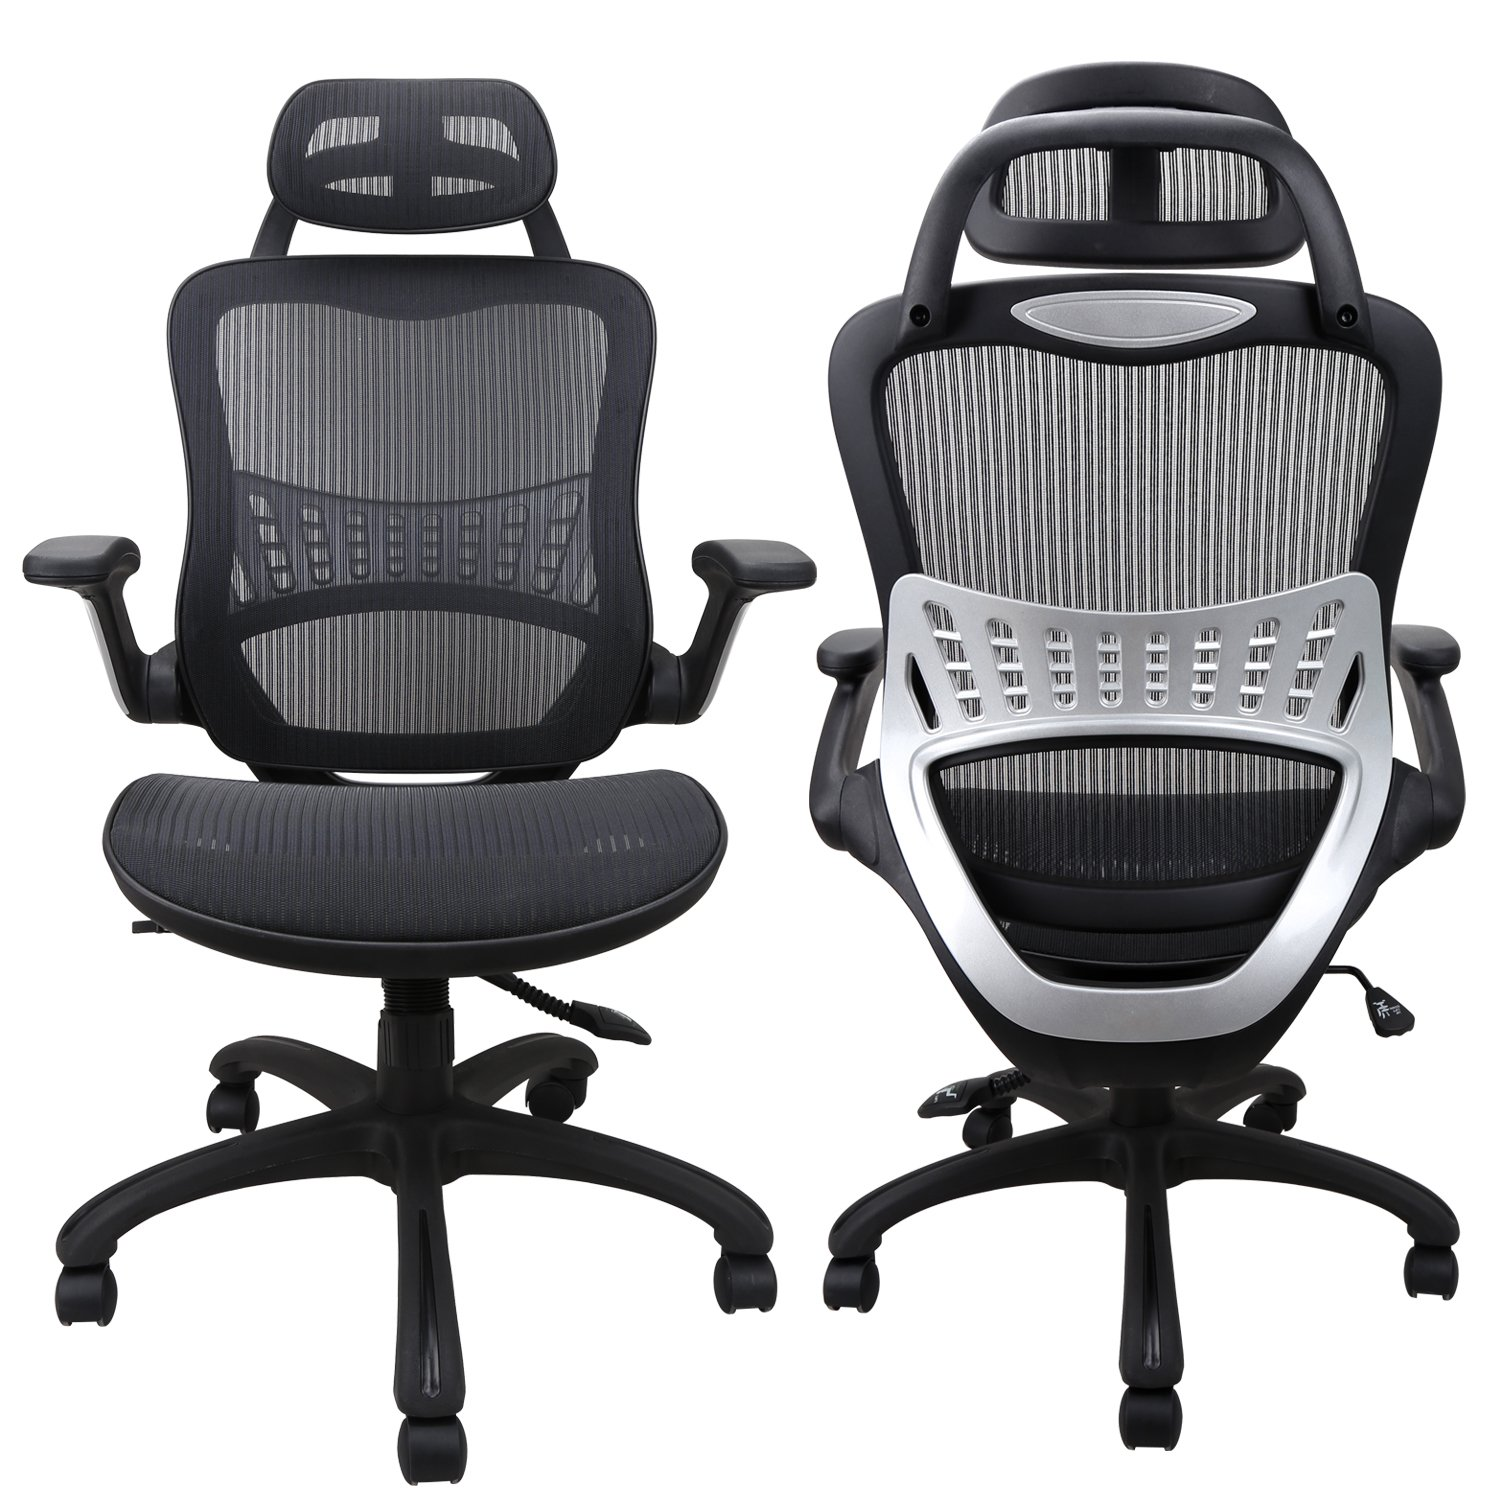 Ergonomic Office Chair: Passed BIFMA/SGS Weight Support Over 300Ibs,Breathable Mesh Cushion &High Back - Executive Chairs with Adjustable Head& Backrest,Flip-up Armrests,360-Degree Swivel Chair by Komene (Image #2)